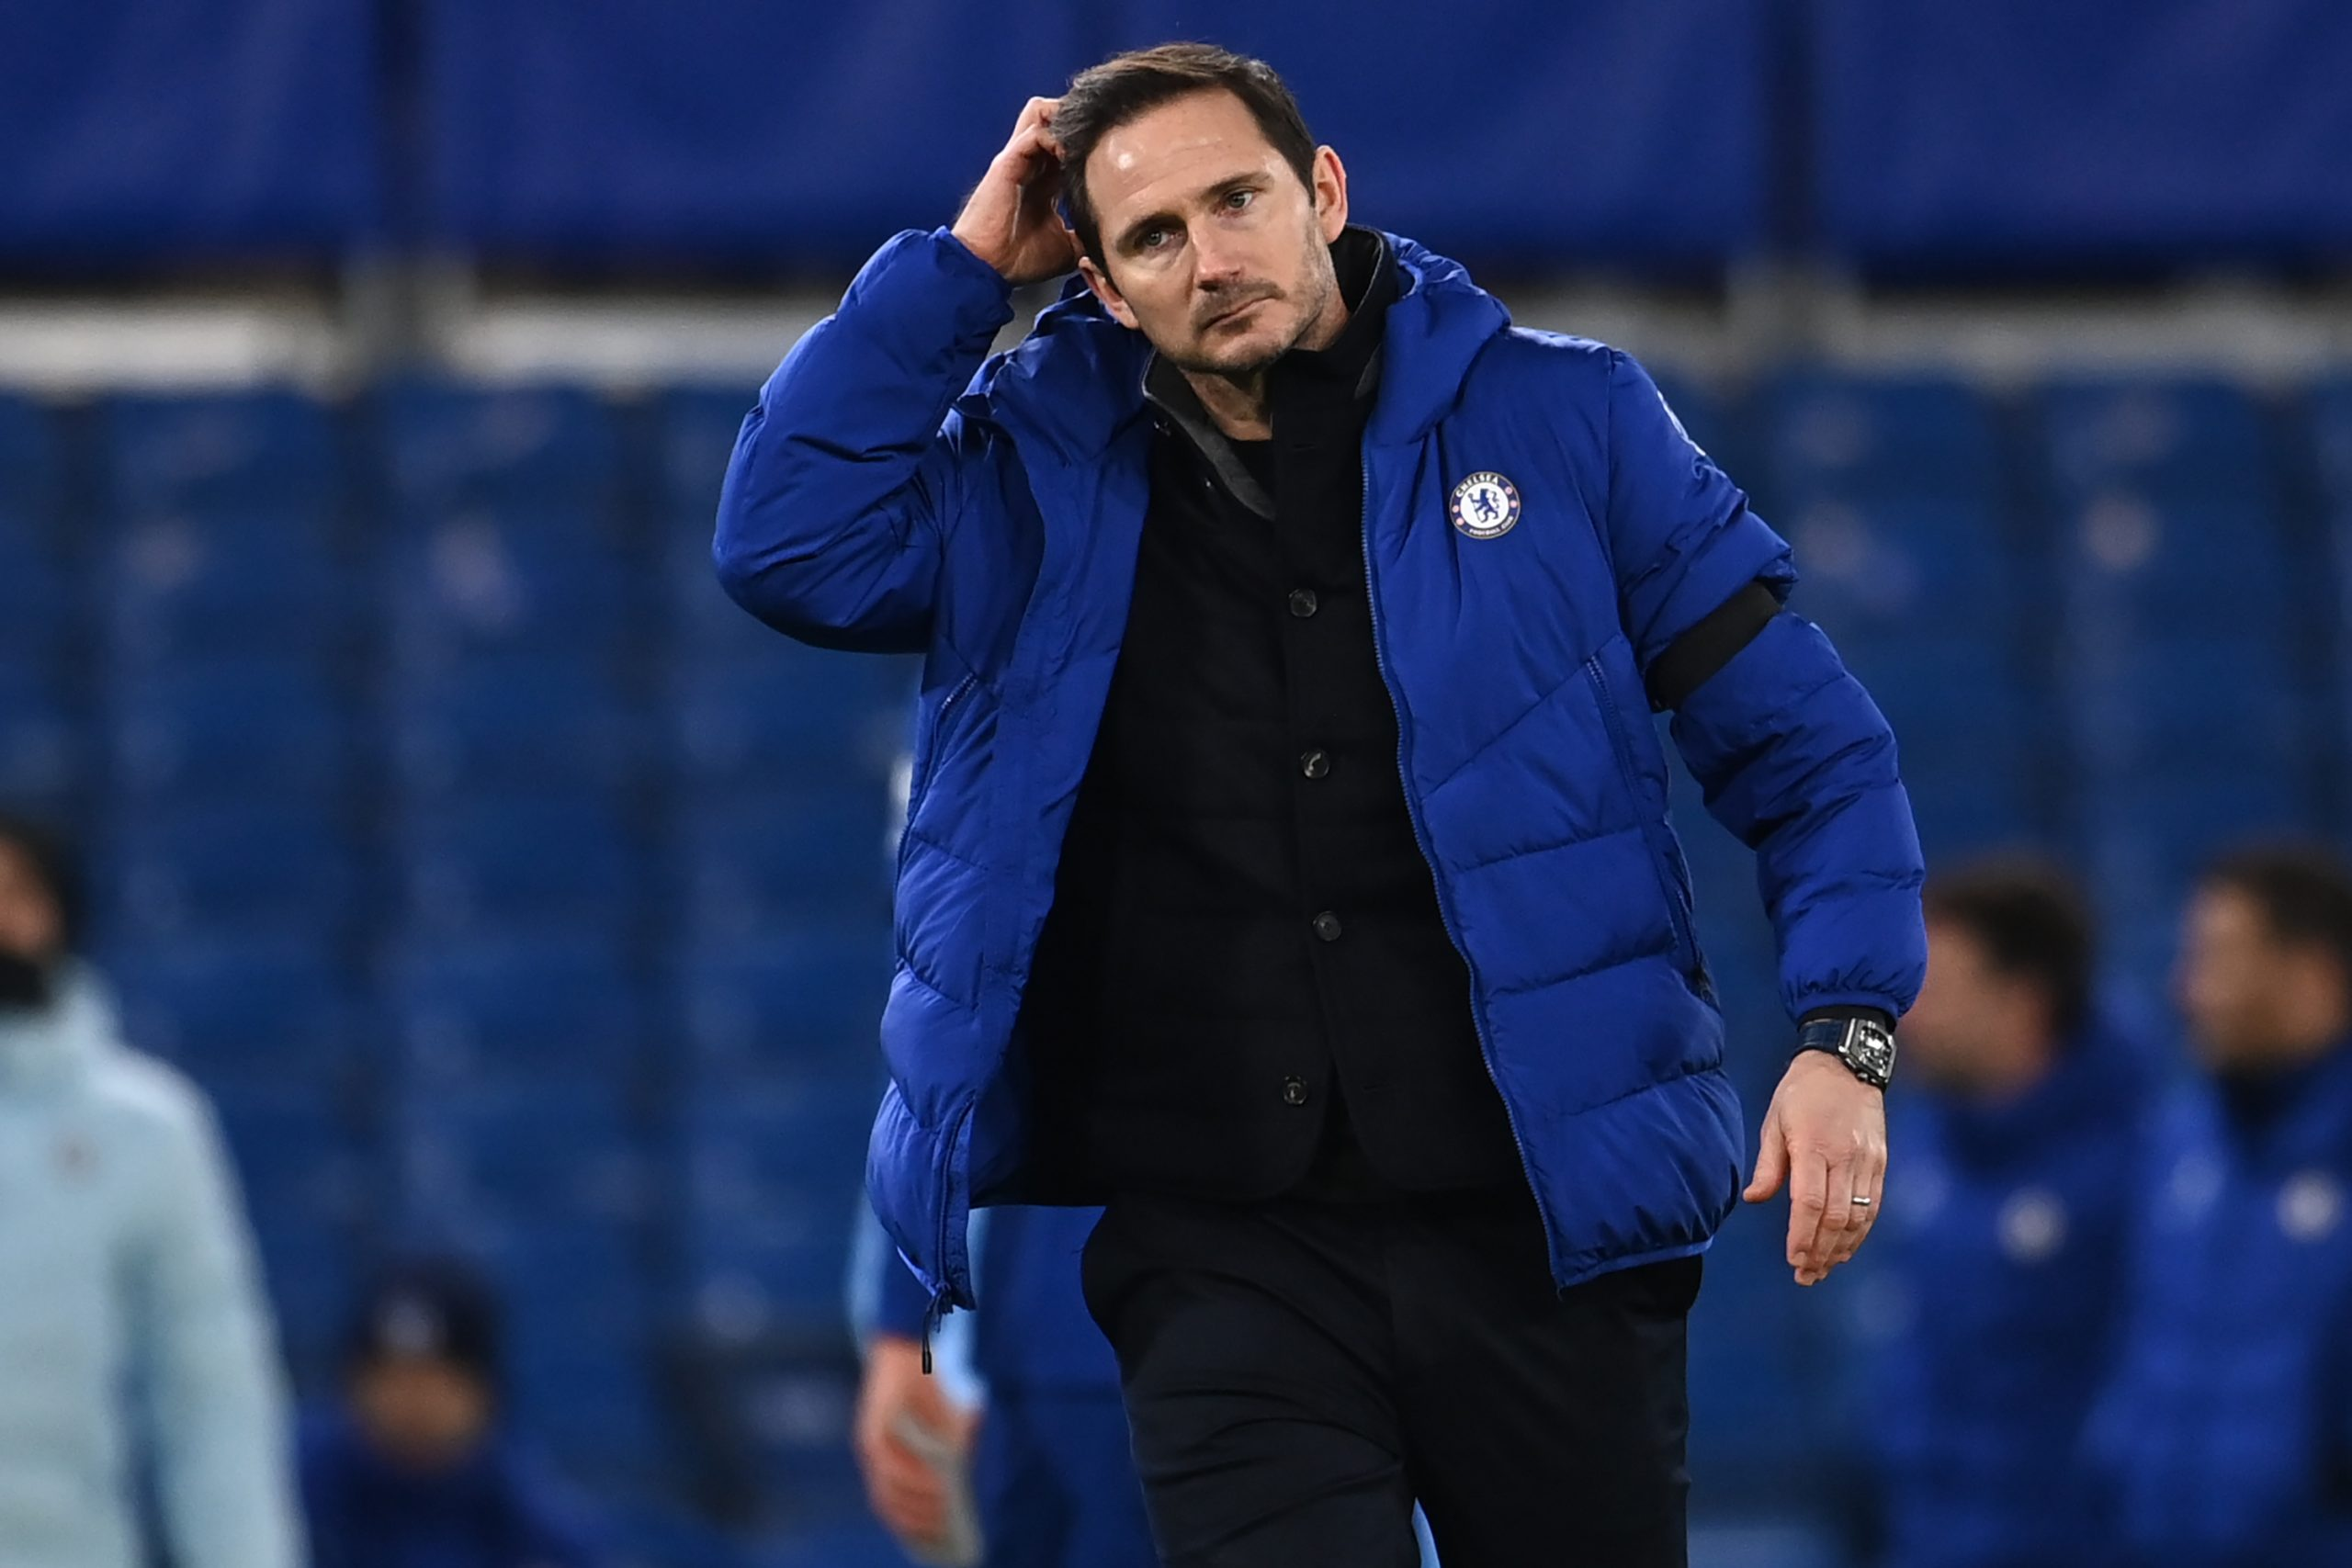 Frank Lampard has jumped to the defence of the players as pressure mounts on them to monitor goal celebrations amid Covid-19 regulations. (GETTY Images)